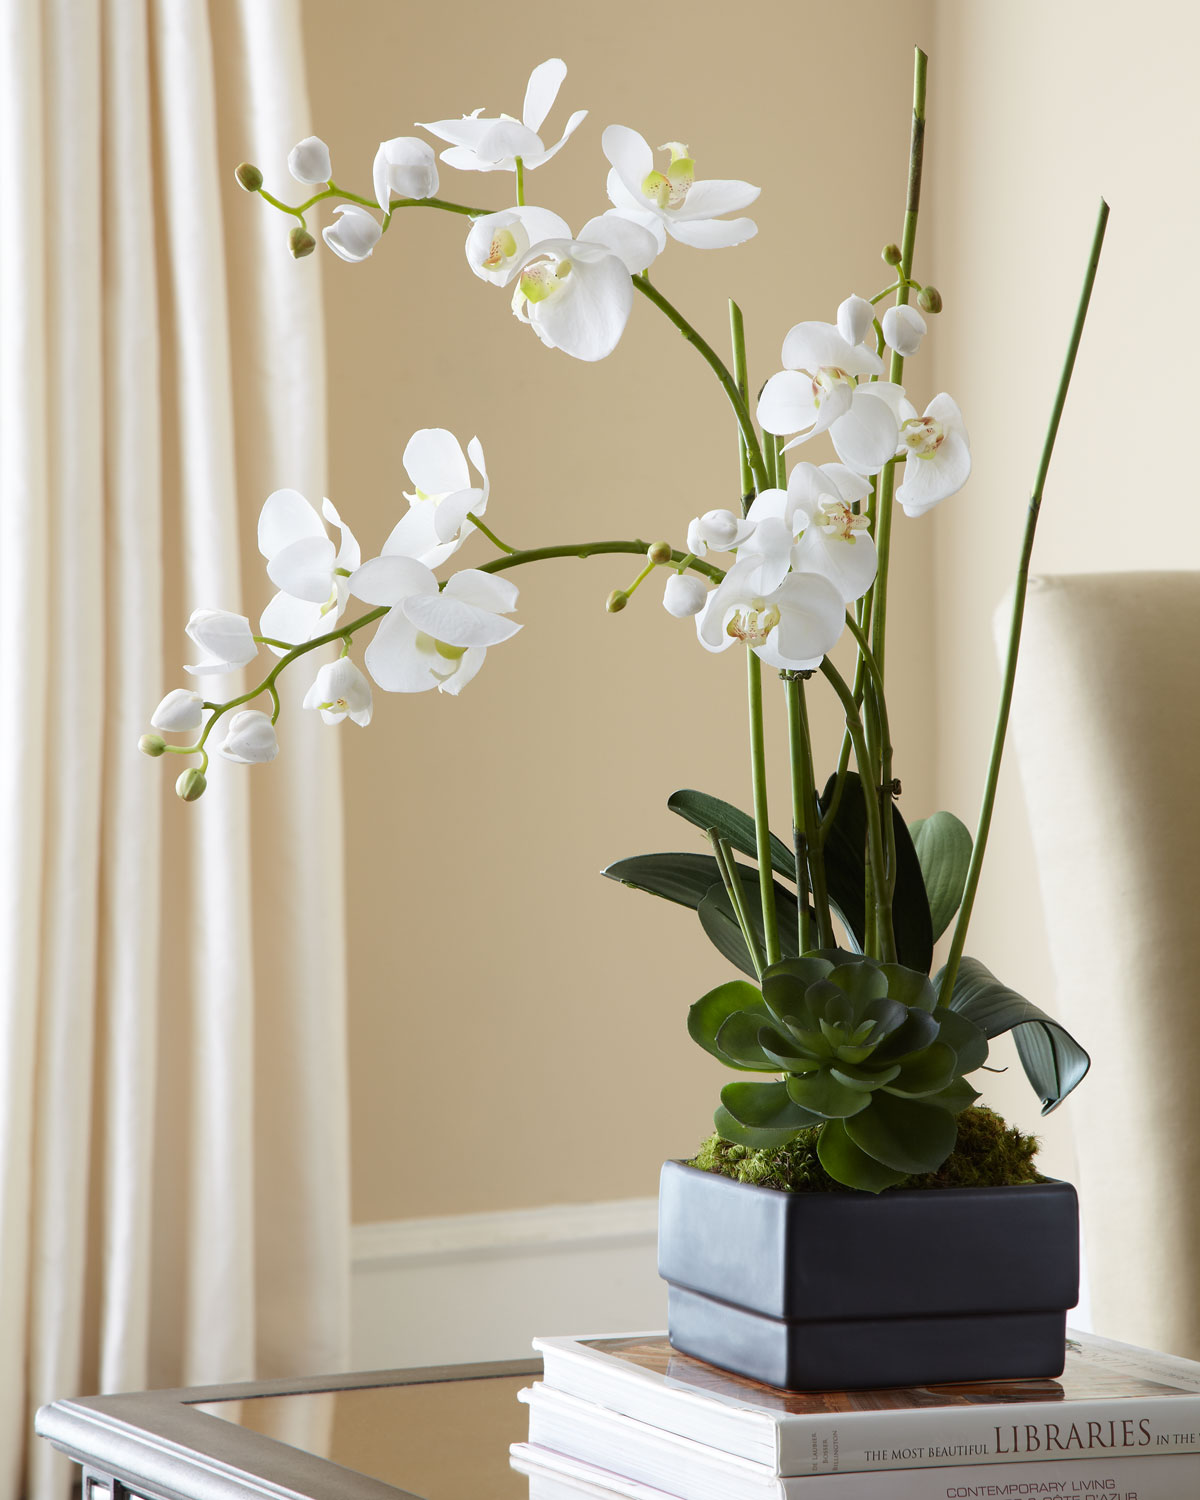 John richard collection white orchid in black planter faux floral john richard collection white orchid in black planter faux floral arrangement neiman marcus mightylinksfo